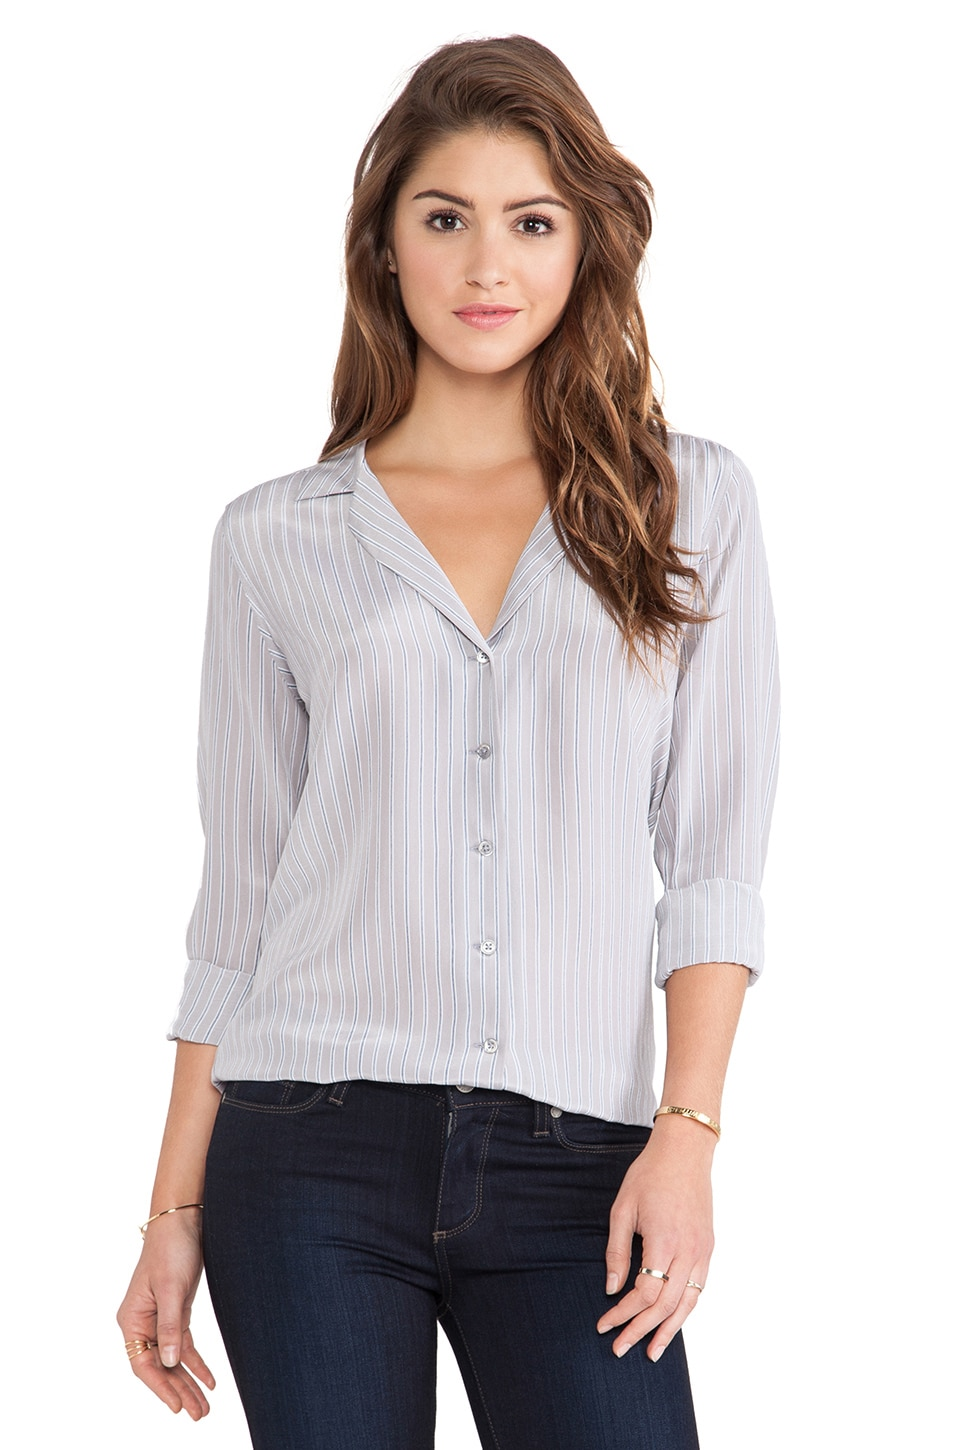 Equipment Adalyn Menswear Stripe Blouse in Silver Sconce Multi